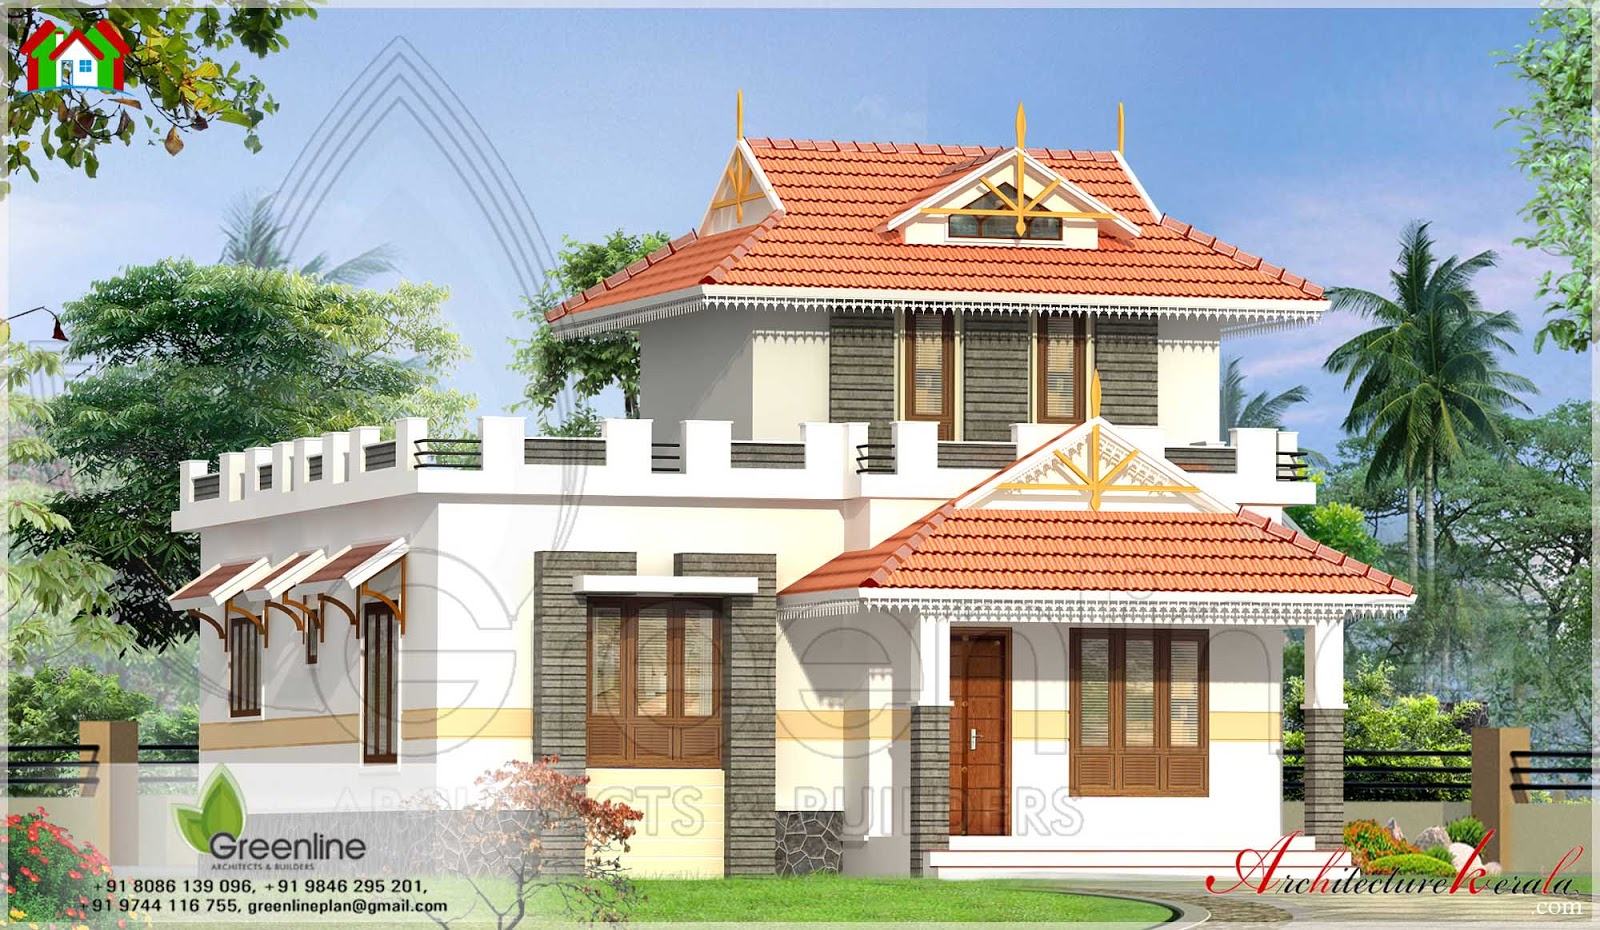 KERALA: 1000 SQUARE FEET TRADITIONAL STYLE KERALA HOUSE ELEVATION